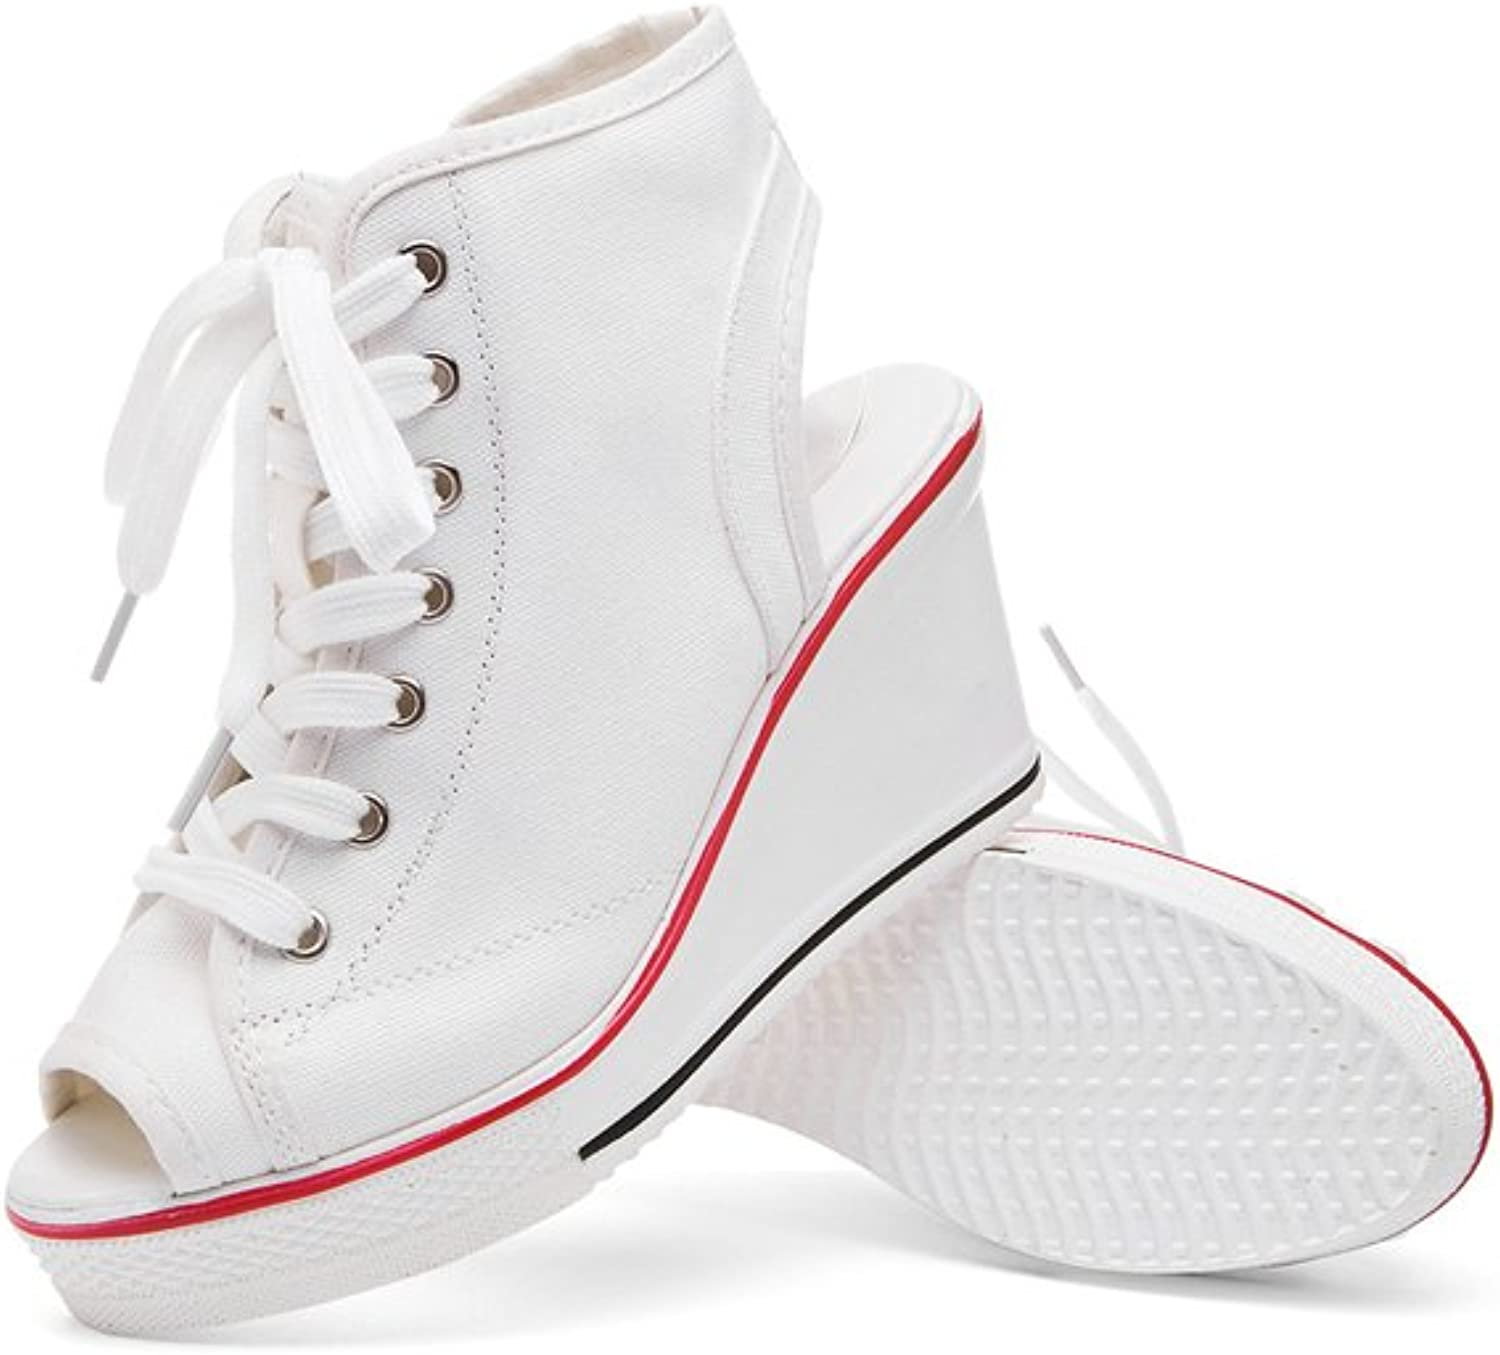 IINFINE Women's High Top Wedges shoes Belt Buckled Zip Lace Up Fashion Sneakers